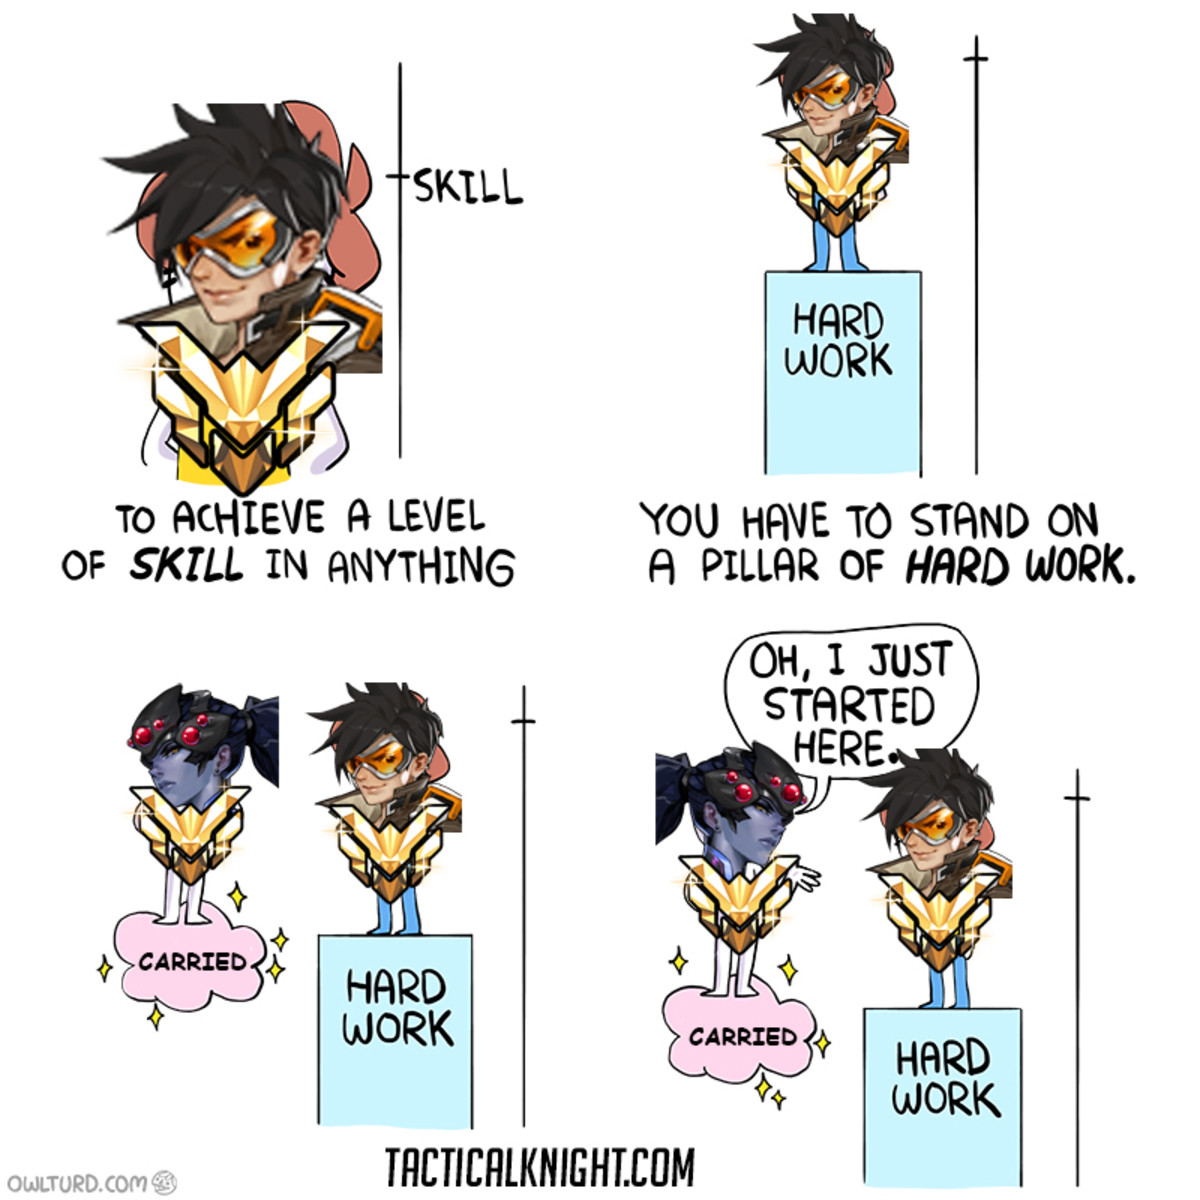 Overwatch Competitive In A Nutshell. You can find the original image at my website I have video 100% proof that Overwatch is rigged to punish skilled players. T